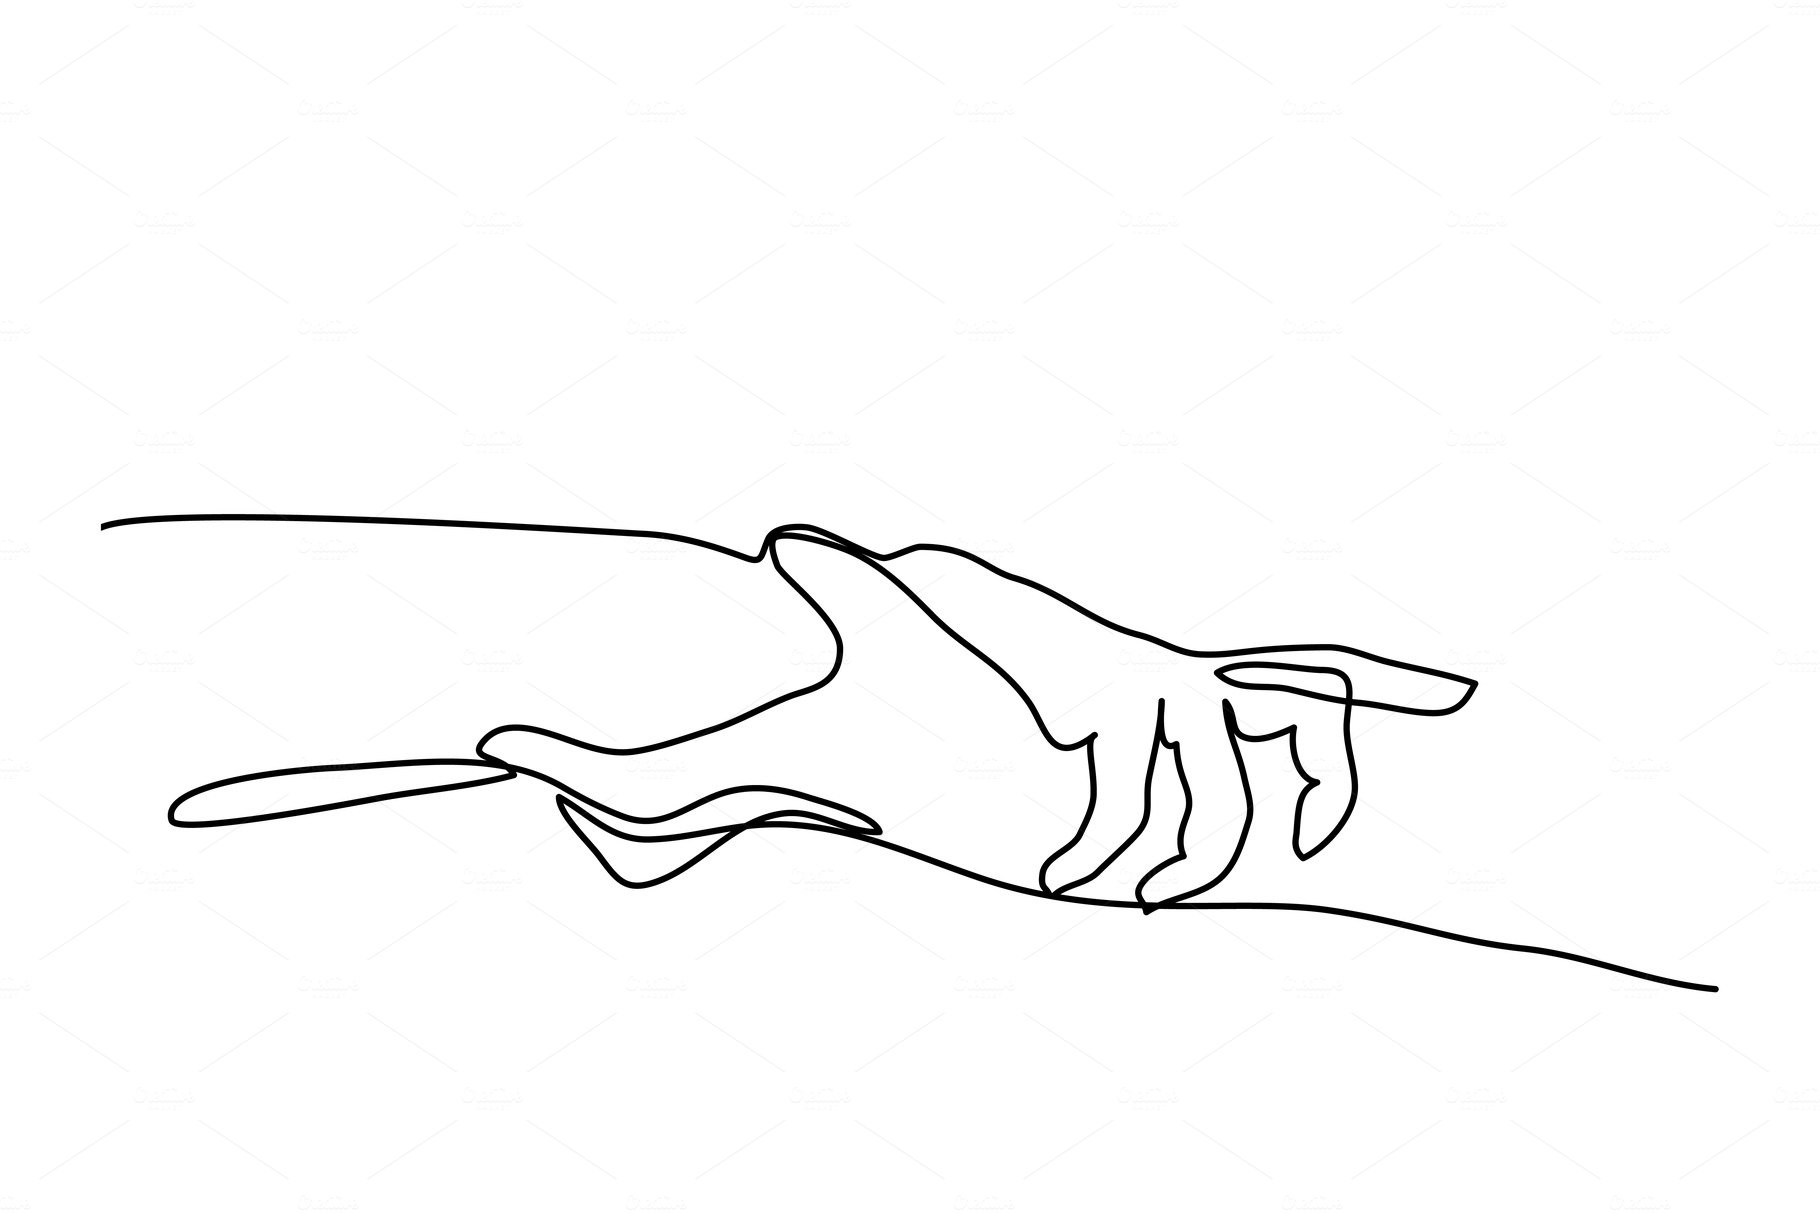 Line Drawing Holding Hands : Continuous line drawing of holding hands together